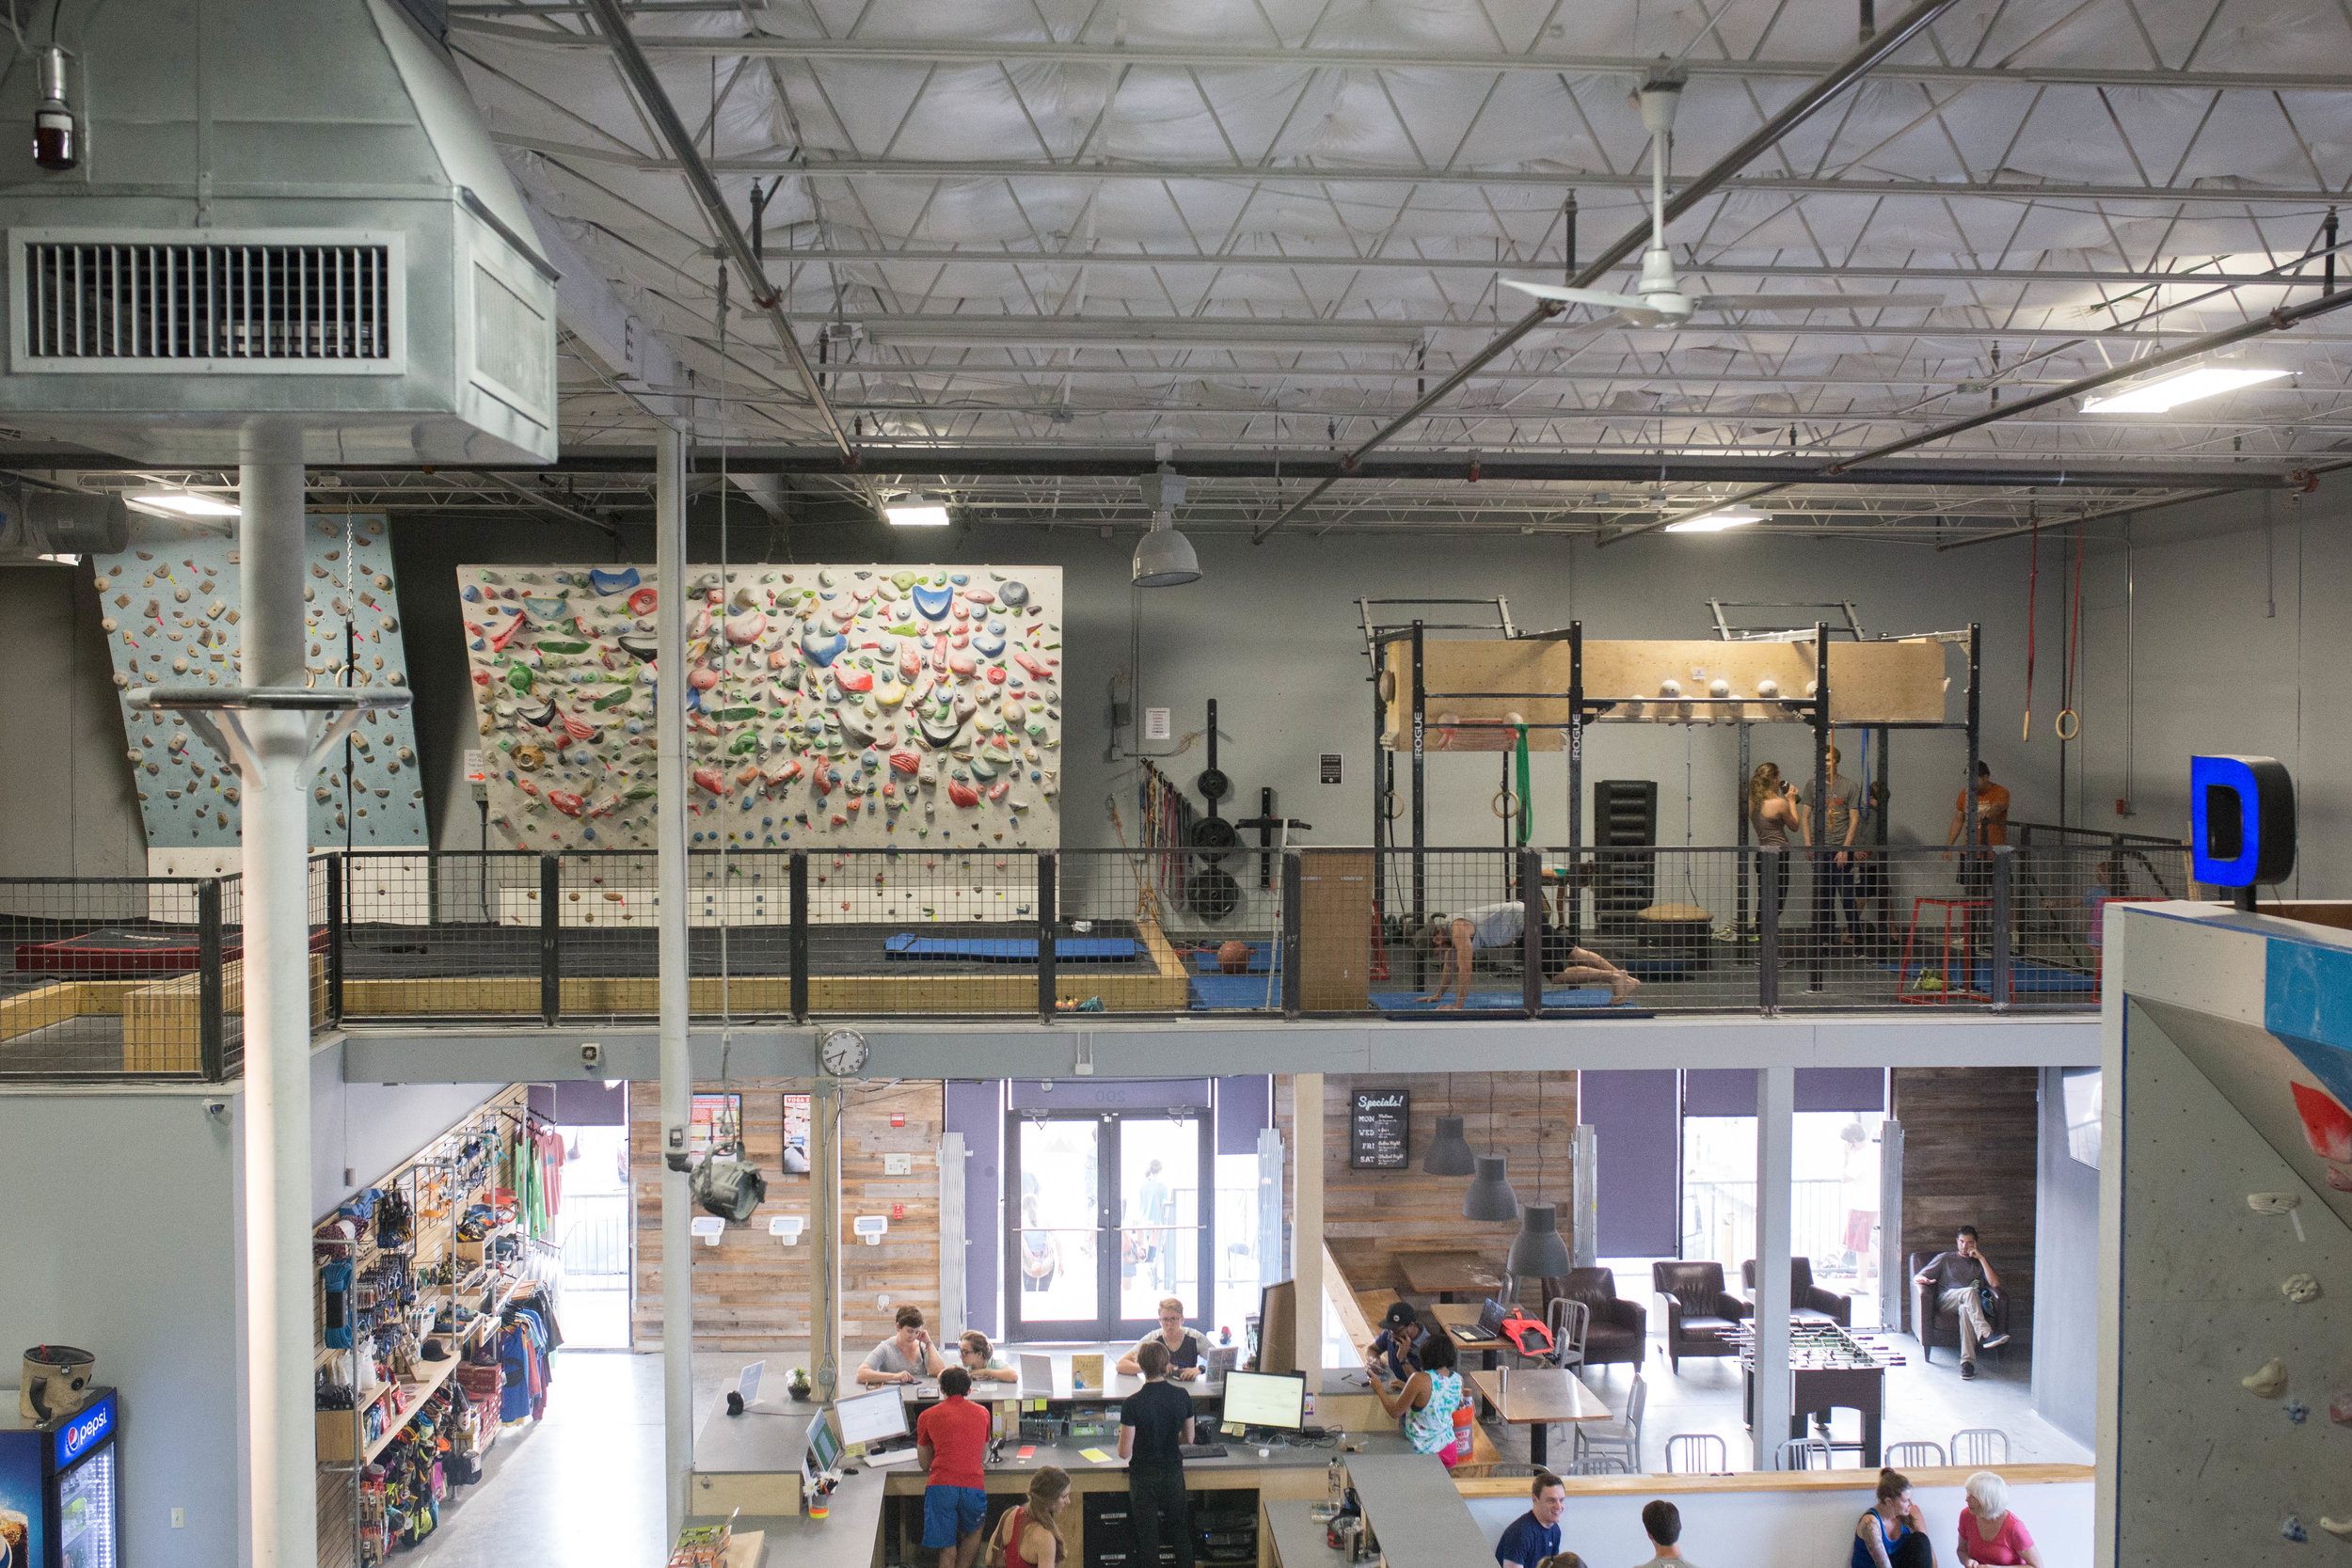 Aerial view of the gym